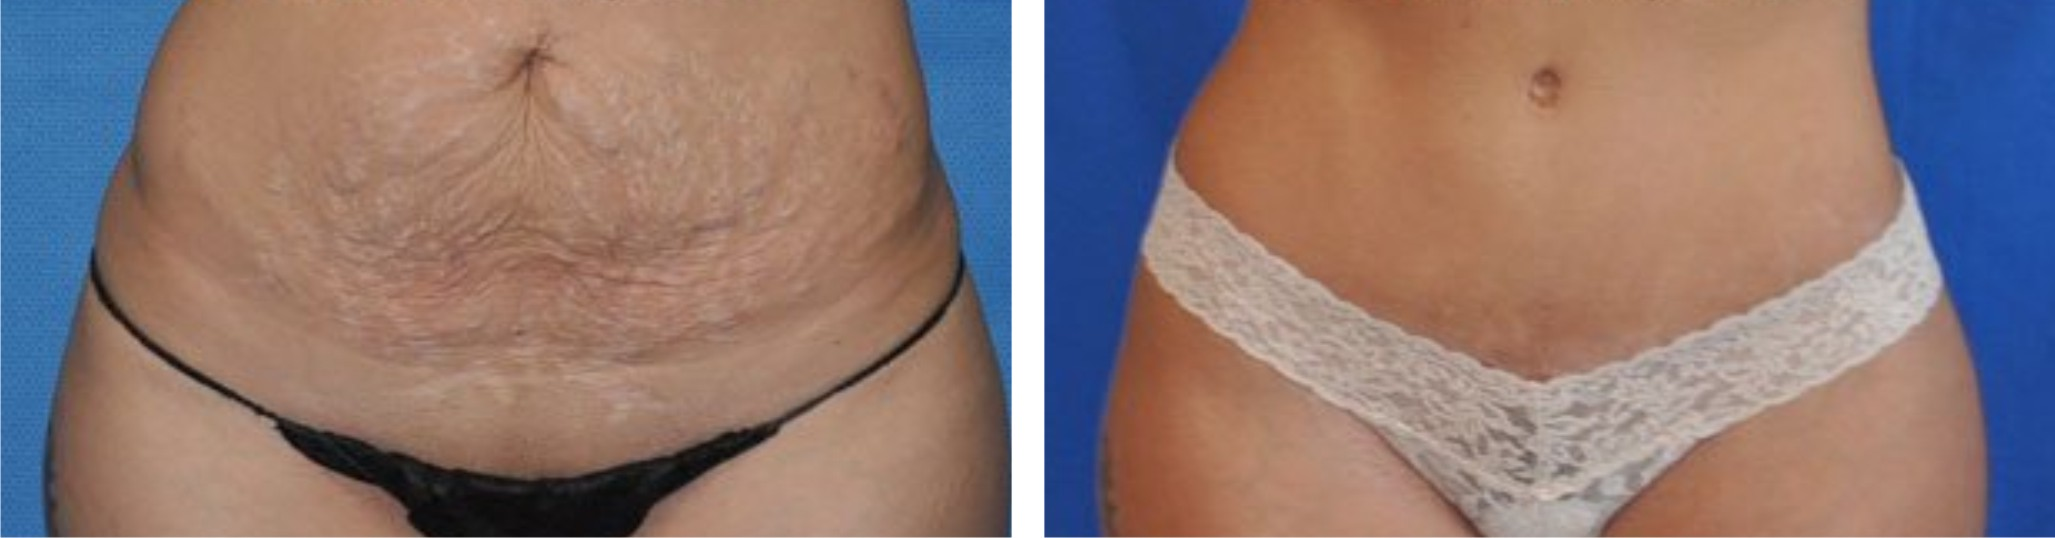 Tummy Tuck Image Two